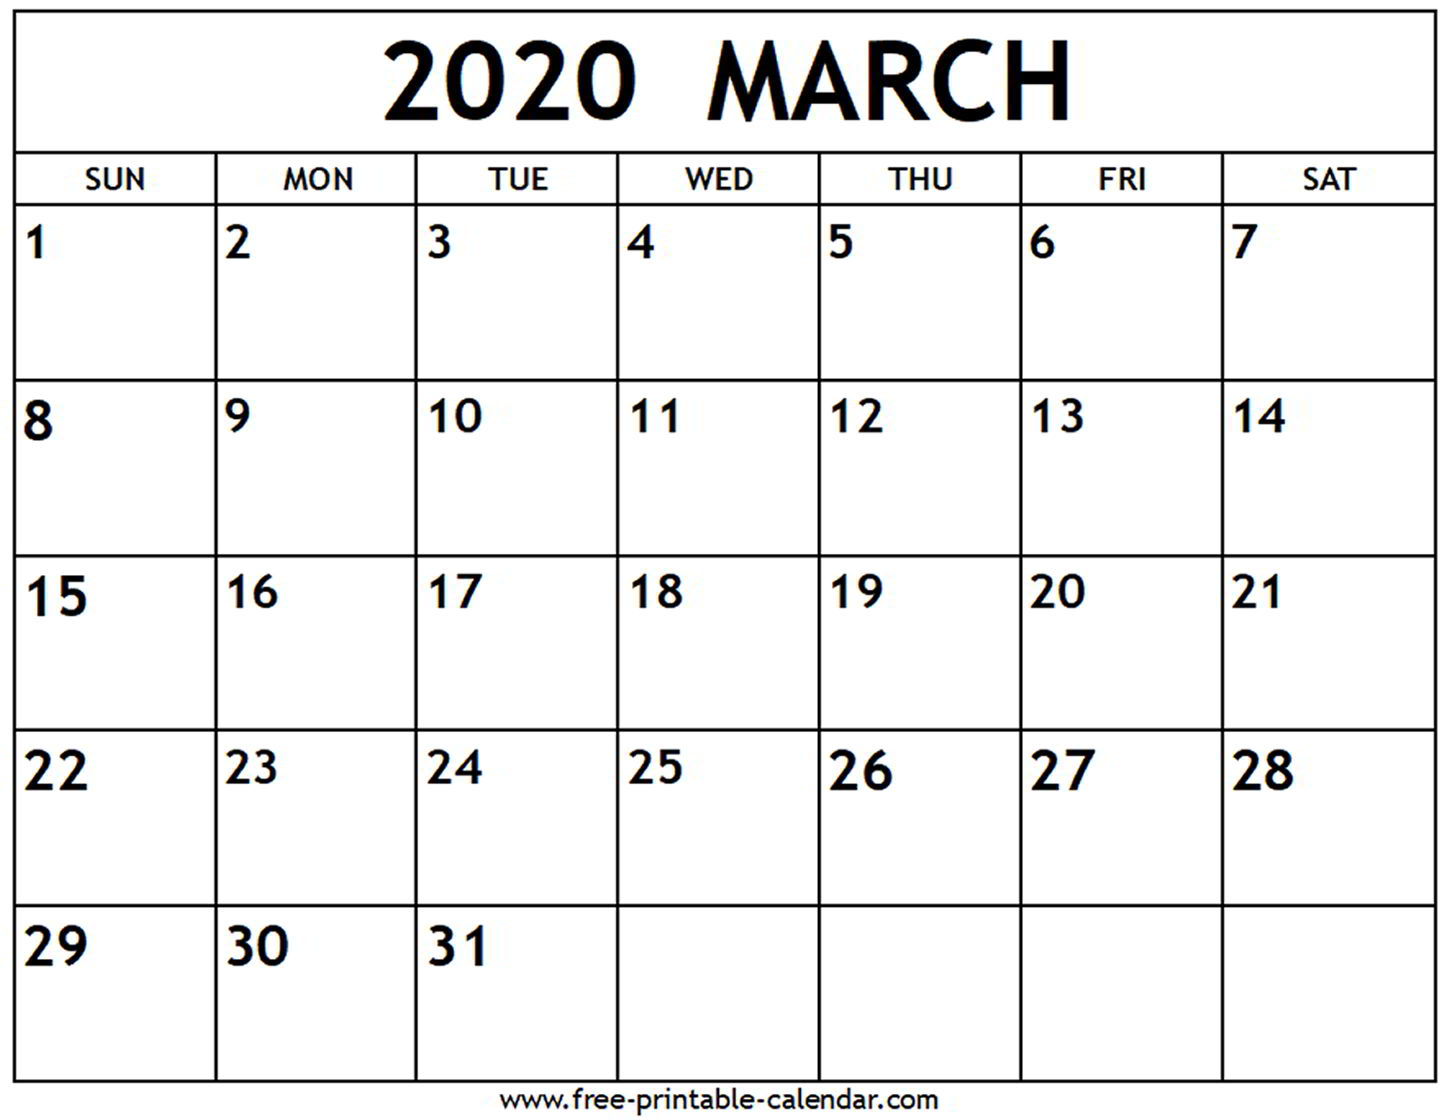 March 2020 Calendar With Holidays Printable - Togo.wpart.co